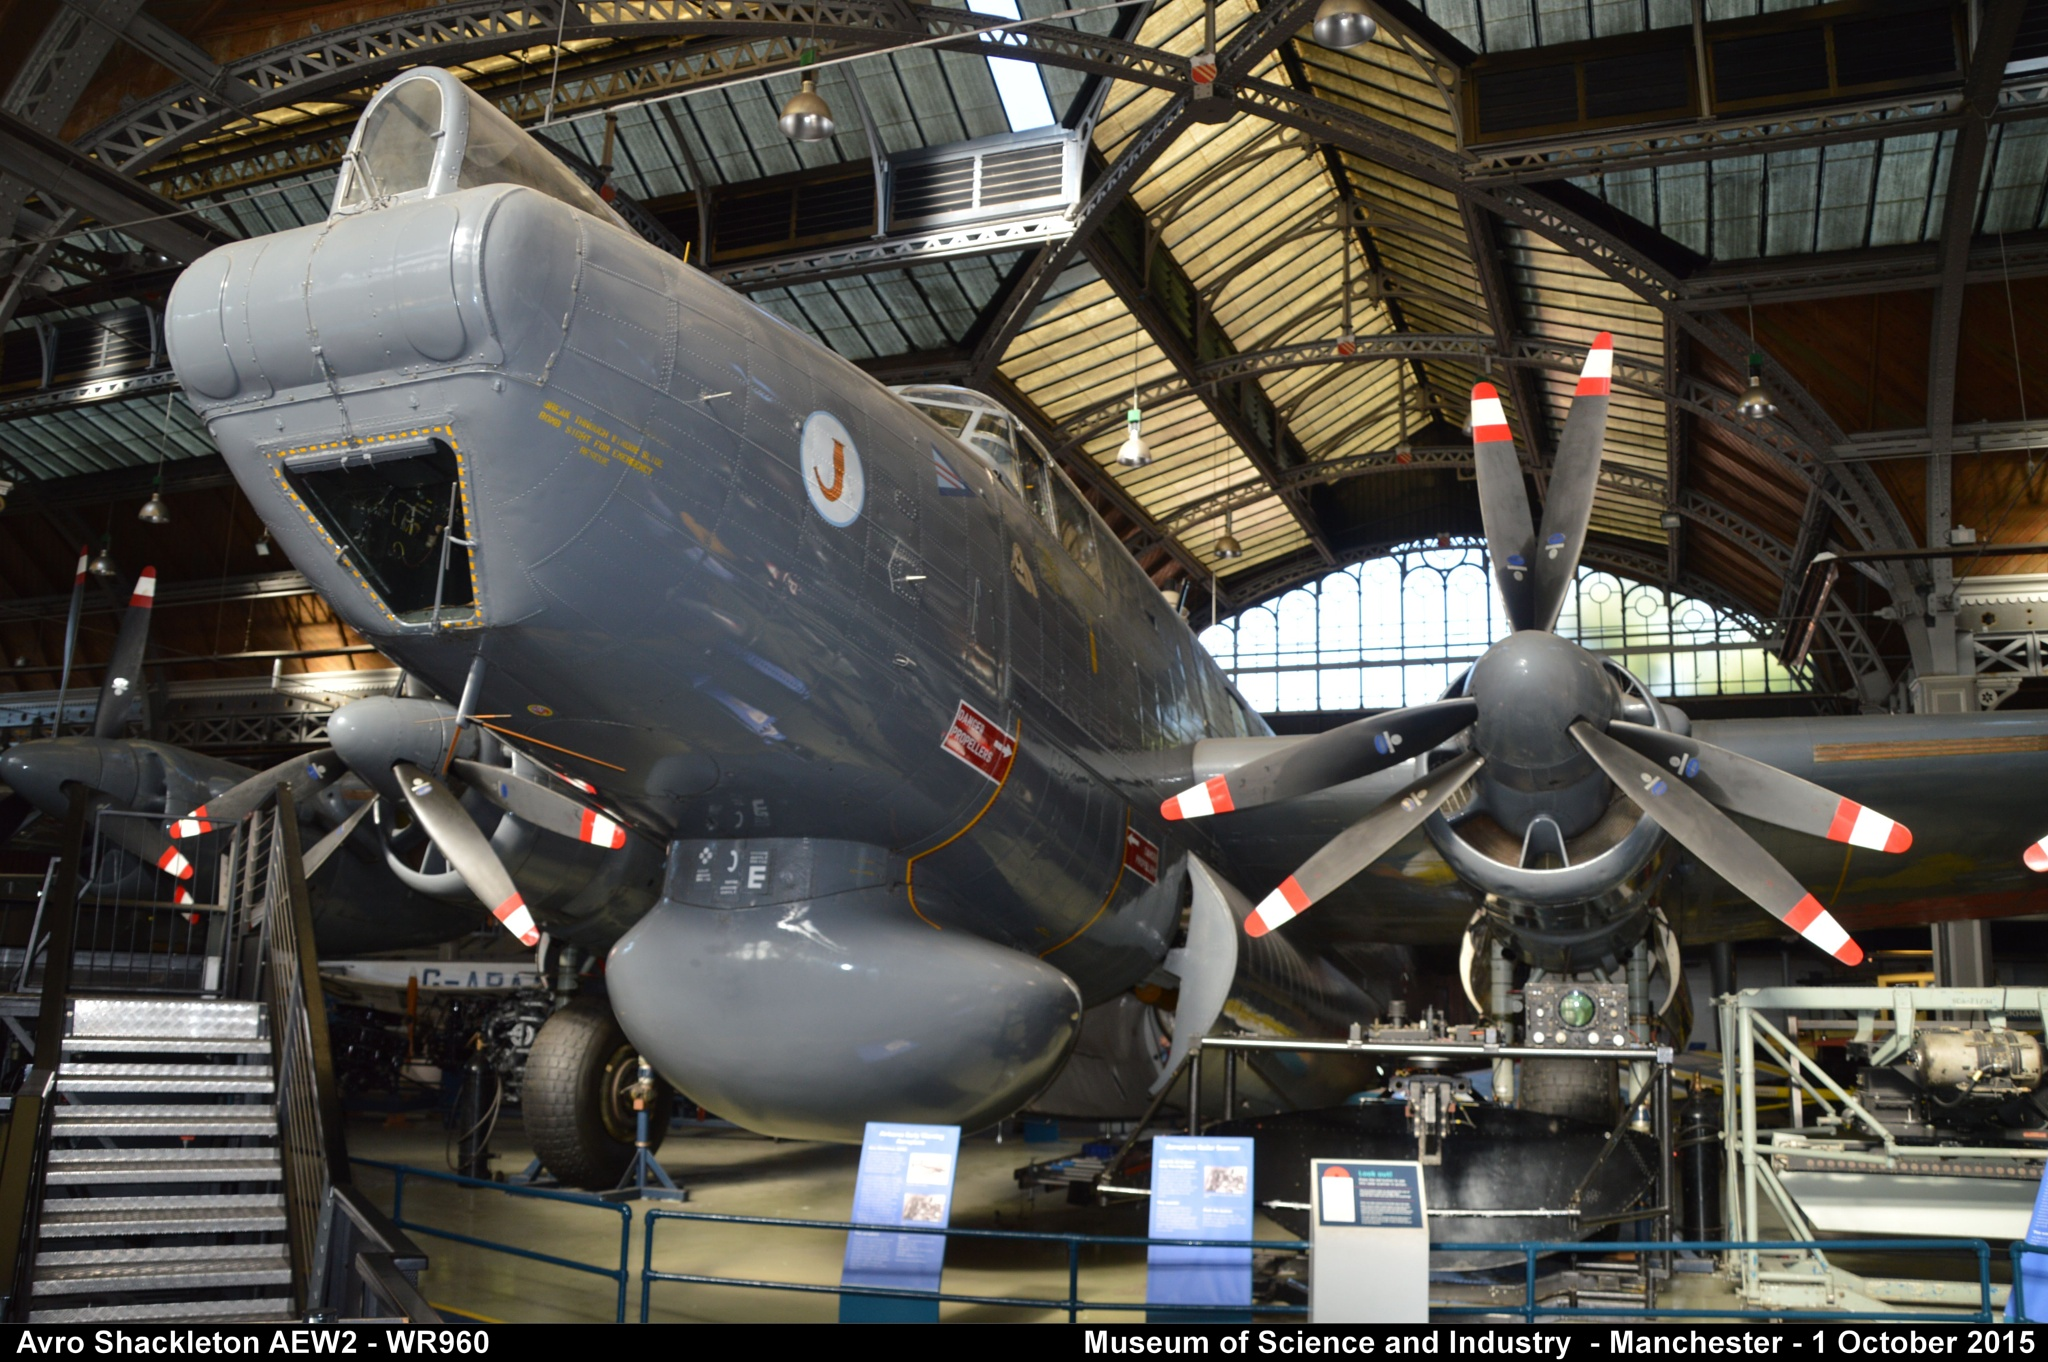 Avro Shackleton AEW2 - WR960 by Graham Wood Photo Collection